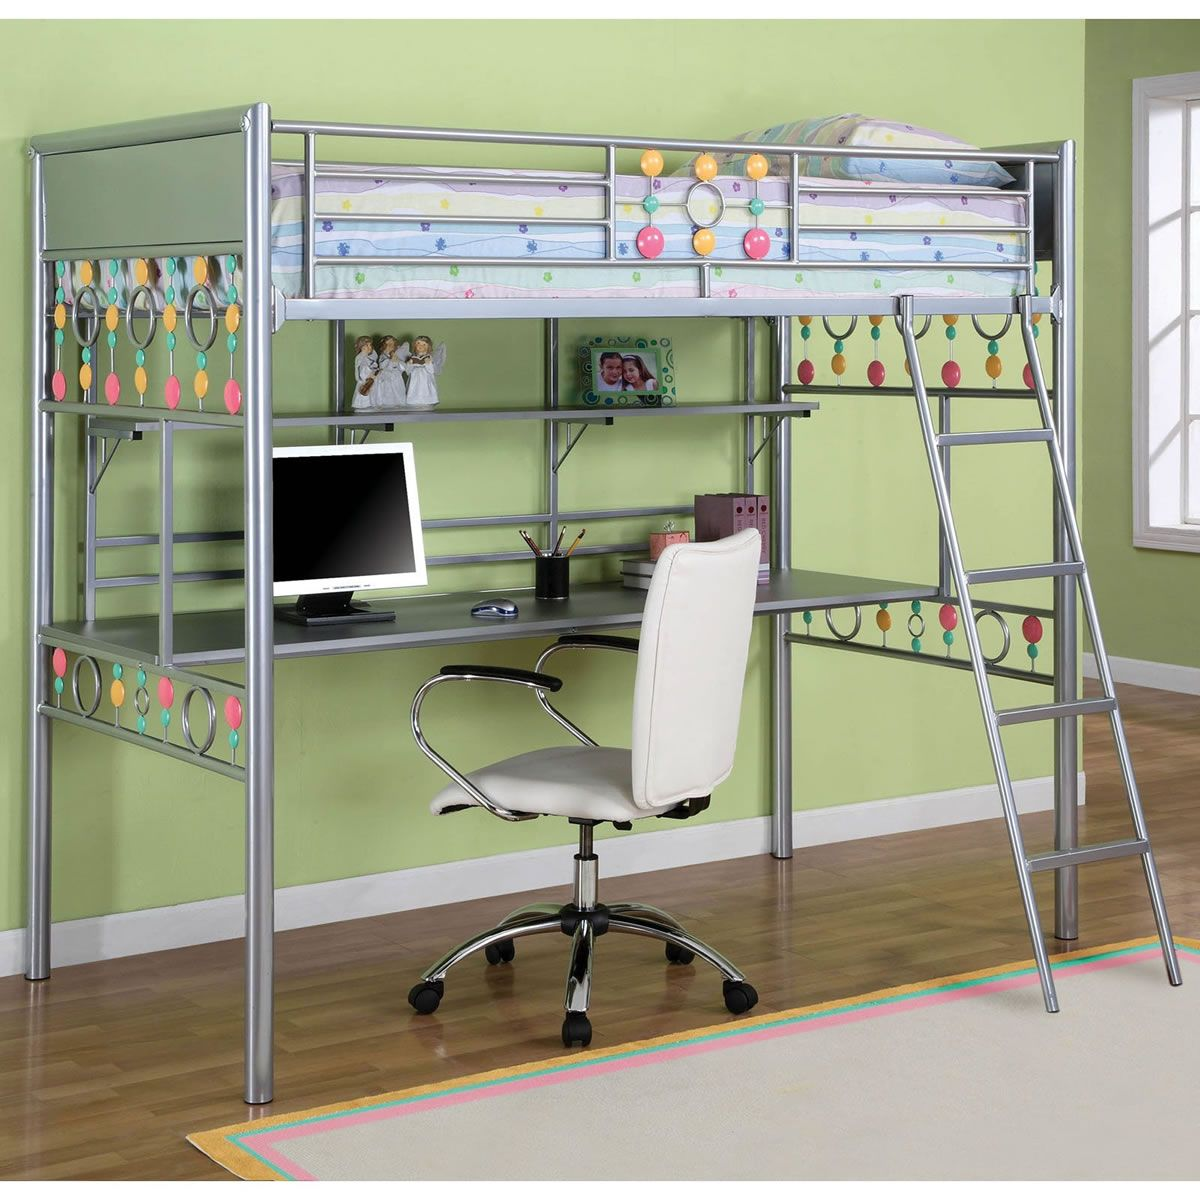 Enticing Gray Paint Iron Kids Loft Bed With Study Desk And Shelving